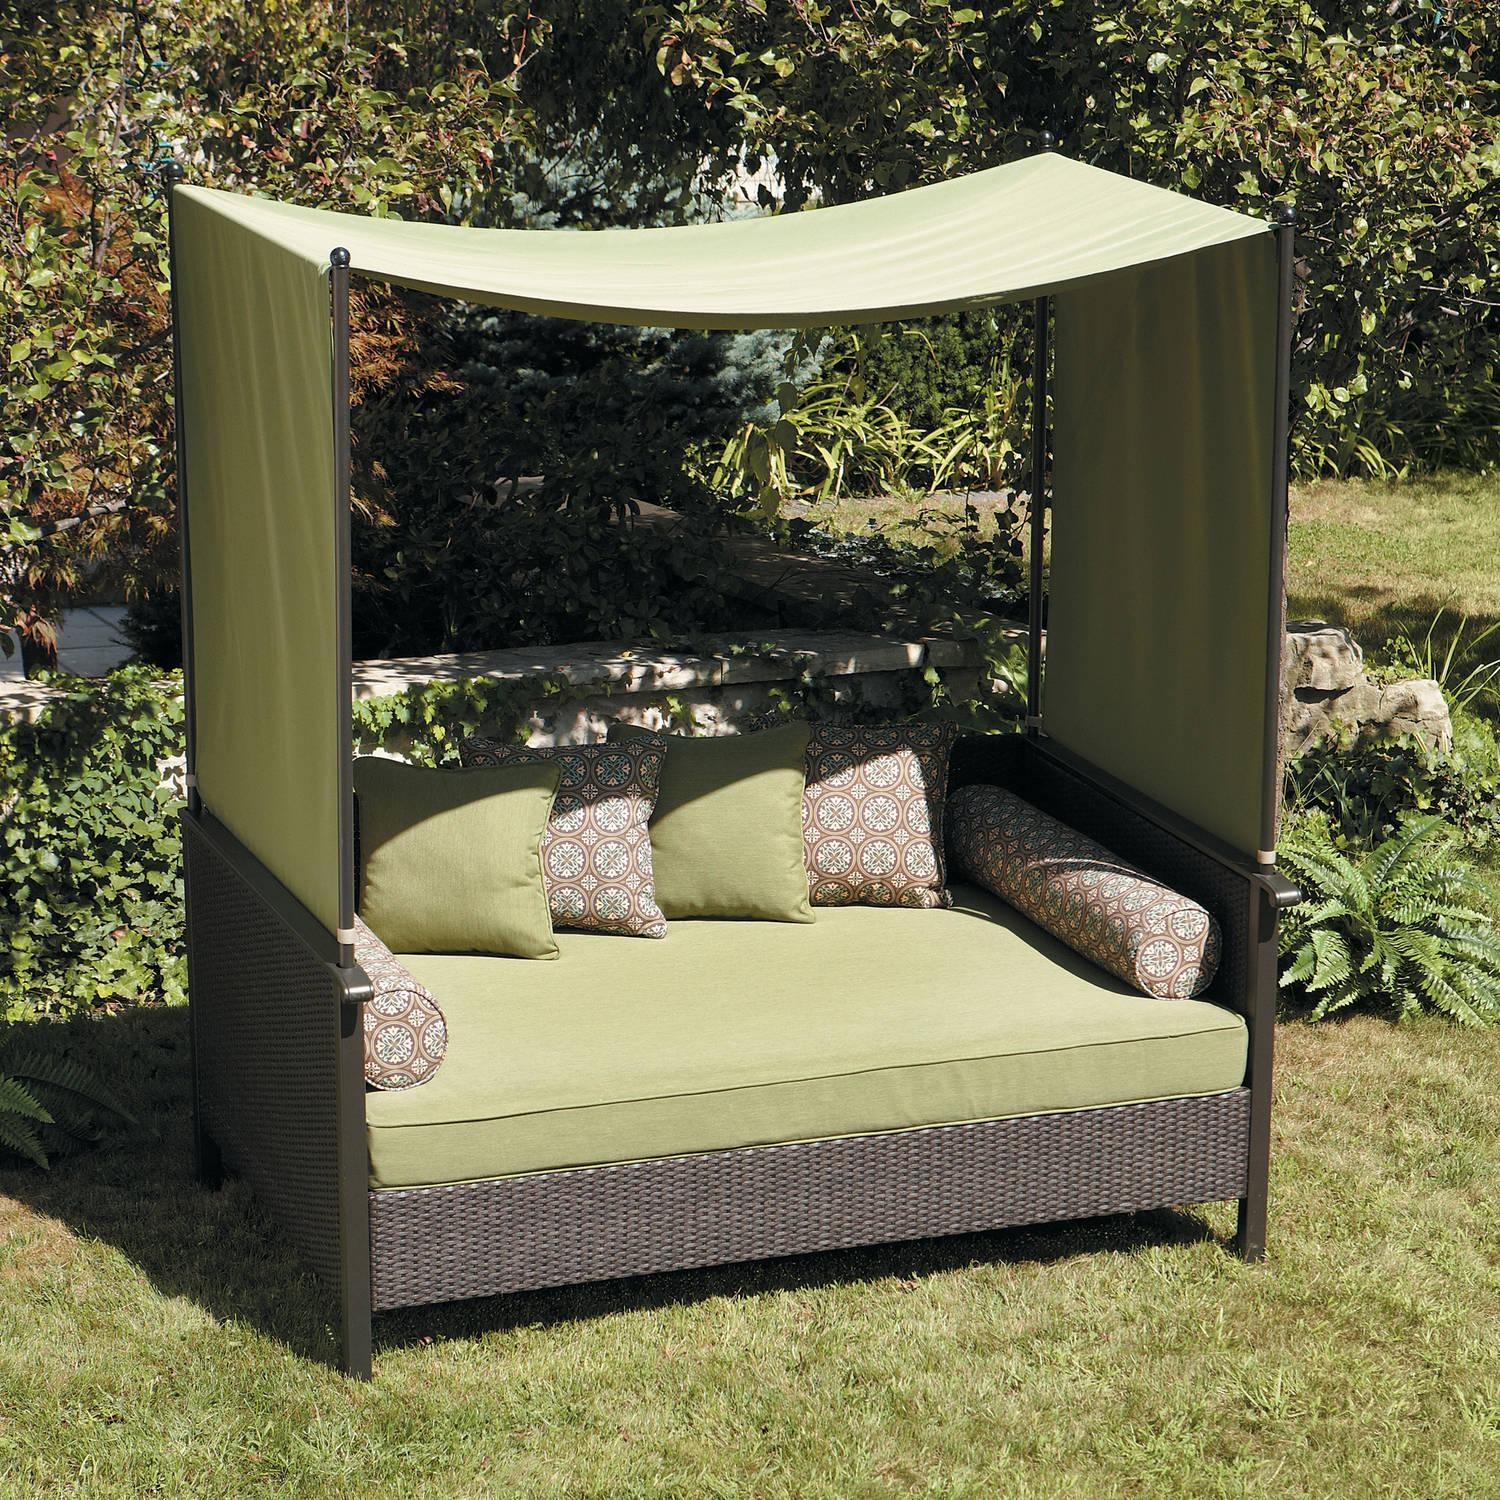 Exterior : Awesome Outdoor Lounge Bed Furniture With Red Canopy In Outdoor Sofas With Canopy (Image 6 of 20)